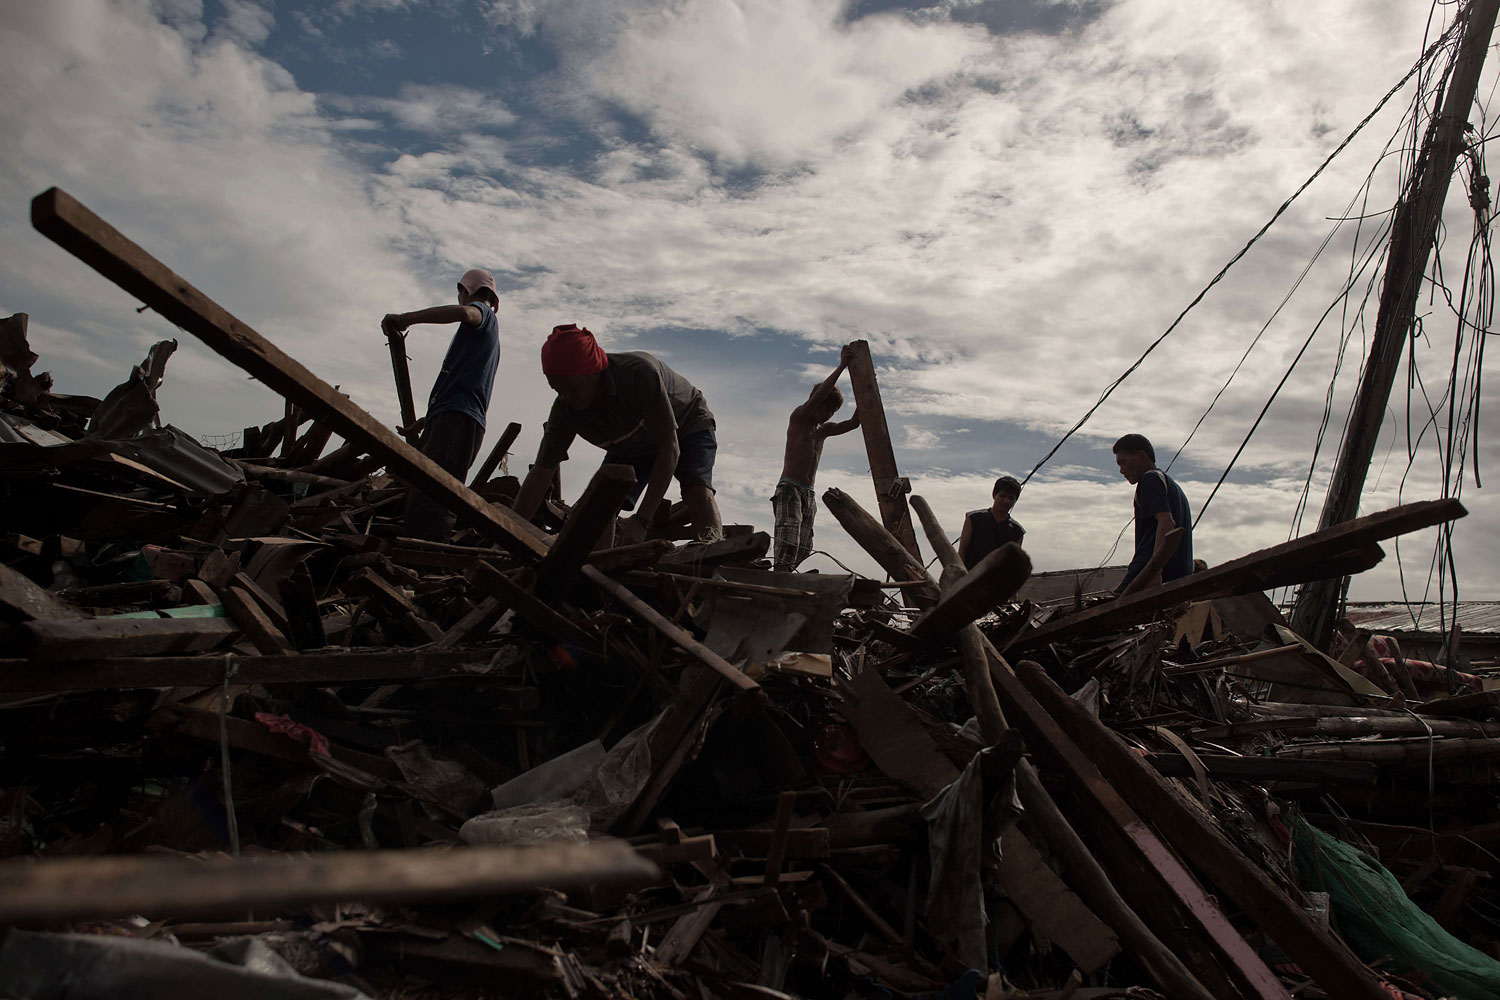 Residents work to clear debris left in the aftermath by Super Typhoon Haiyan in the Philippine city of Tacloban on November 21, 2013.